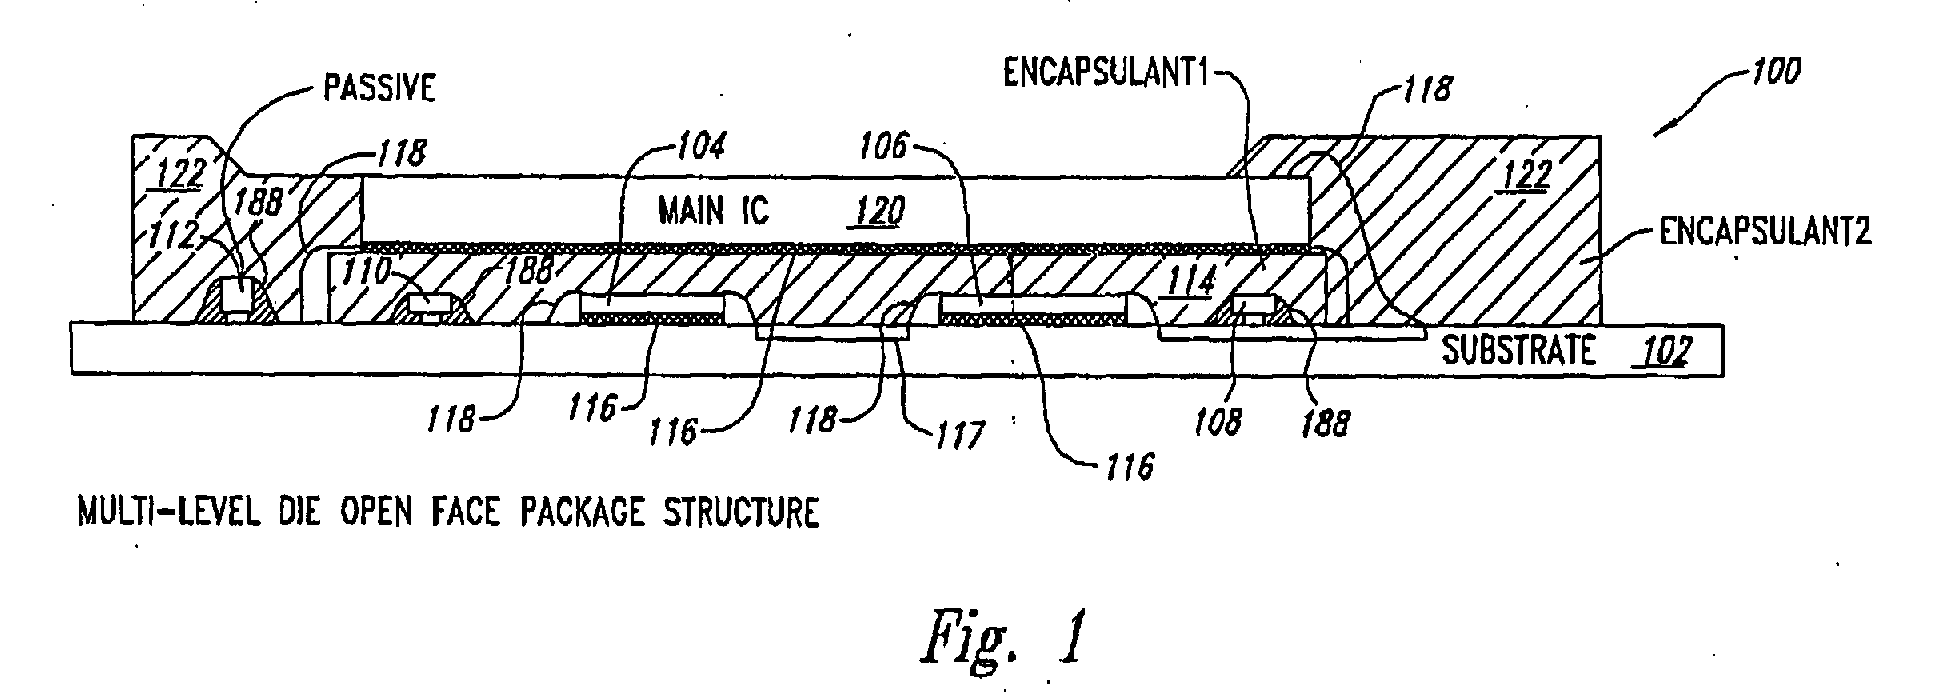 ep1418622a1 - encapsulation of multiple integrated circuits